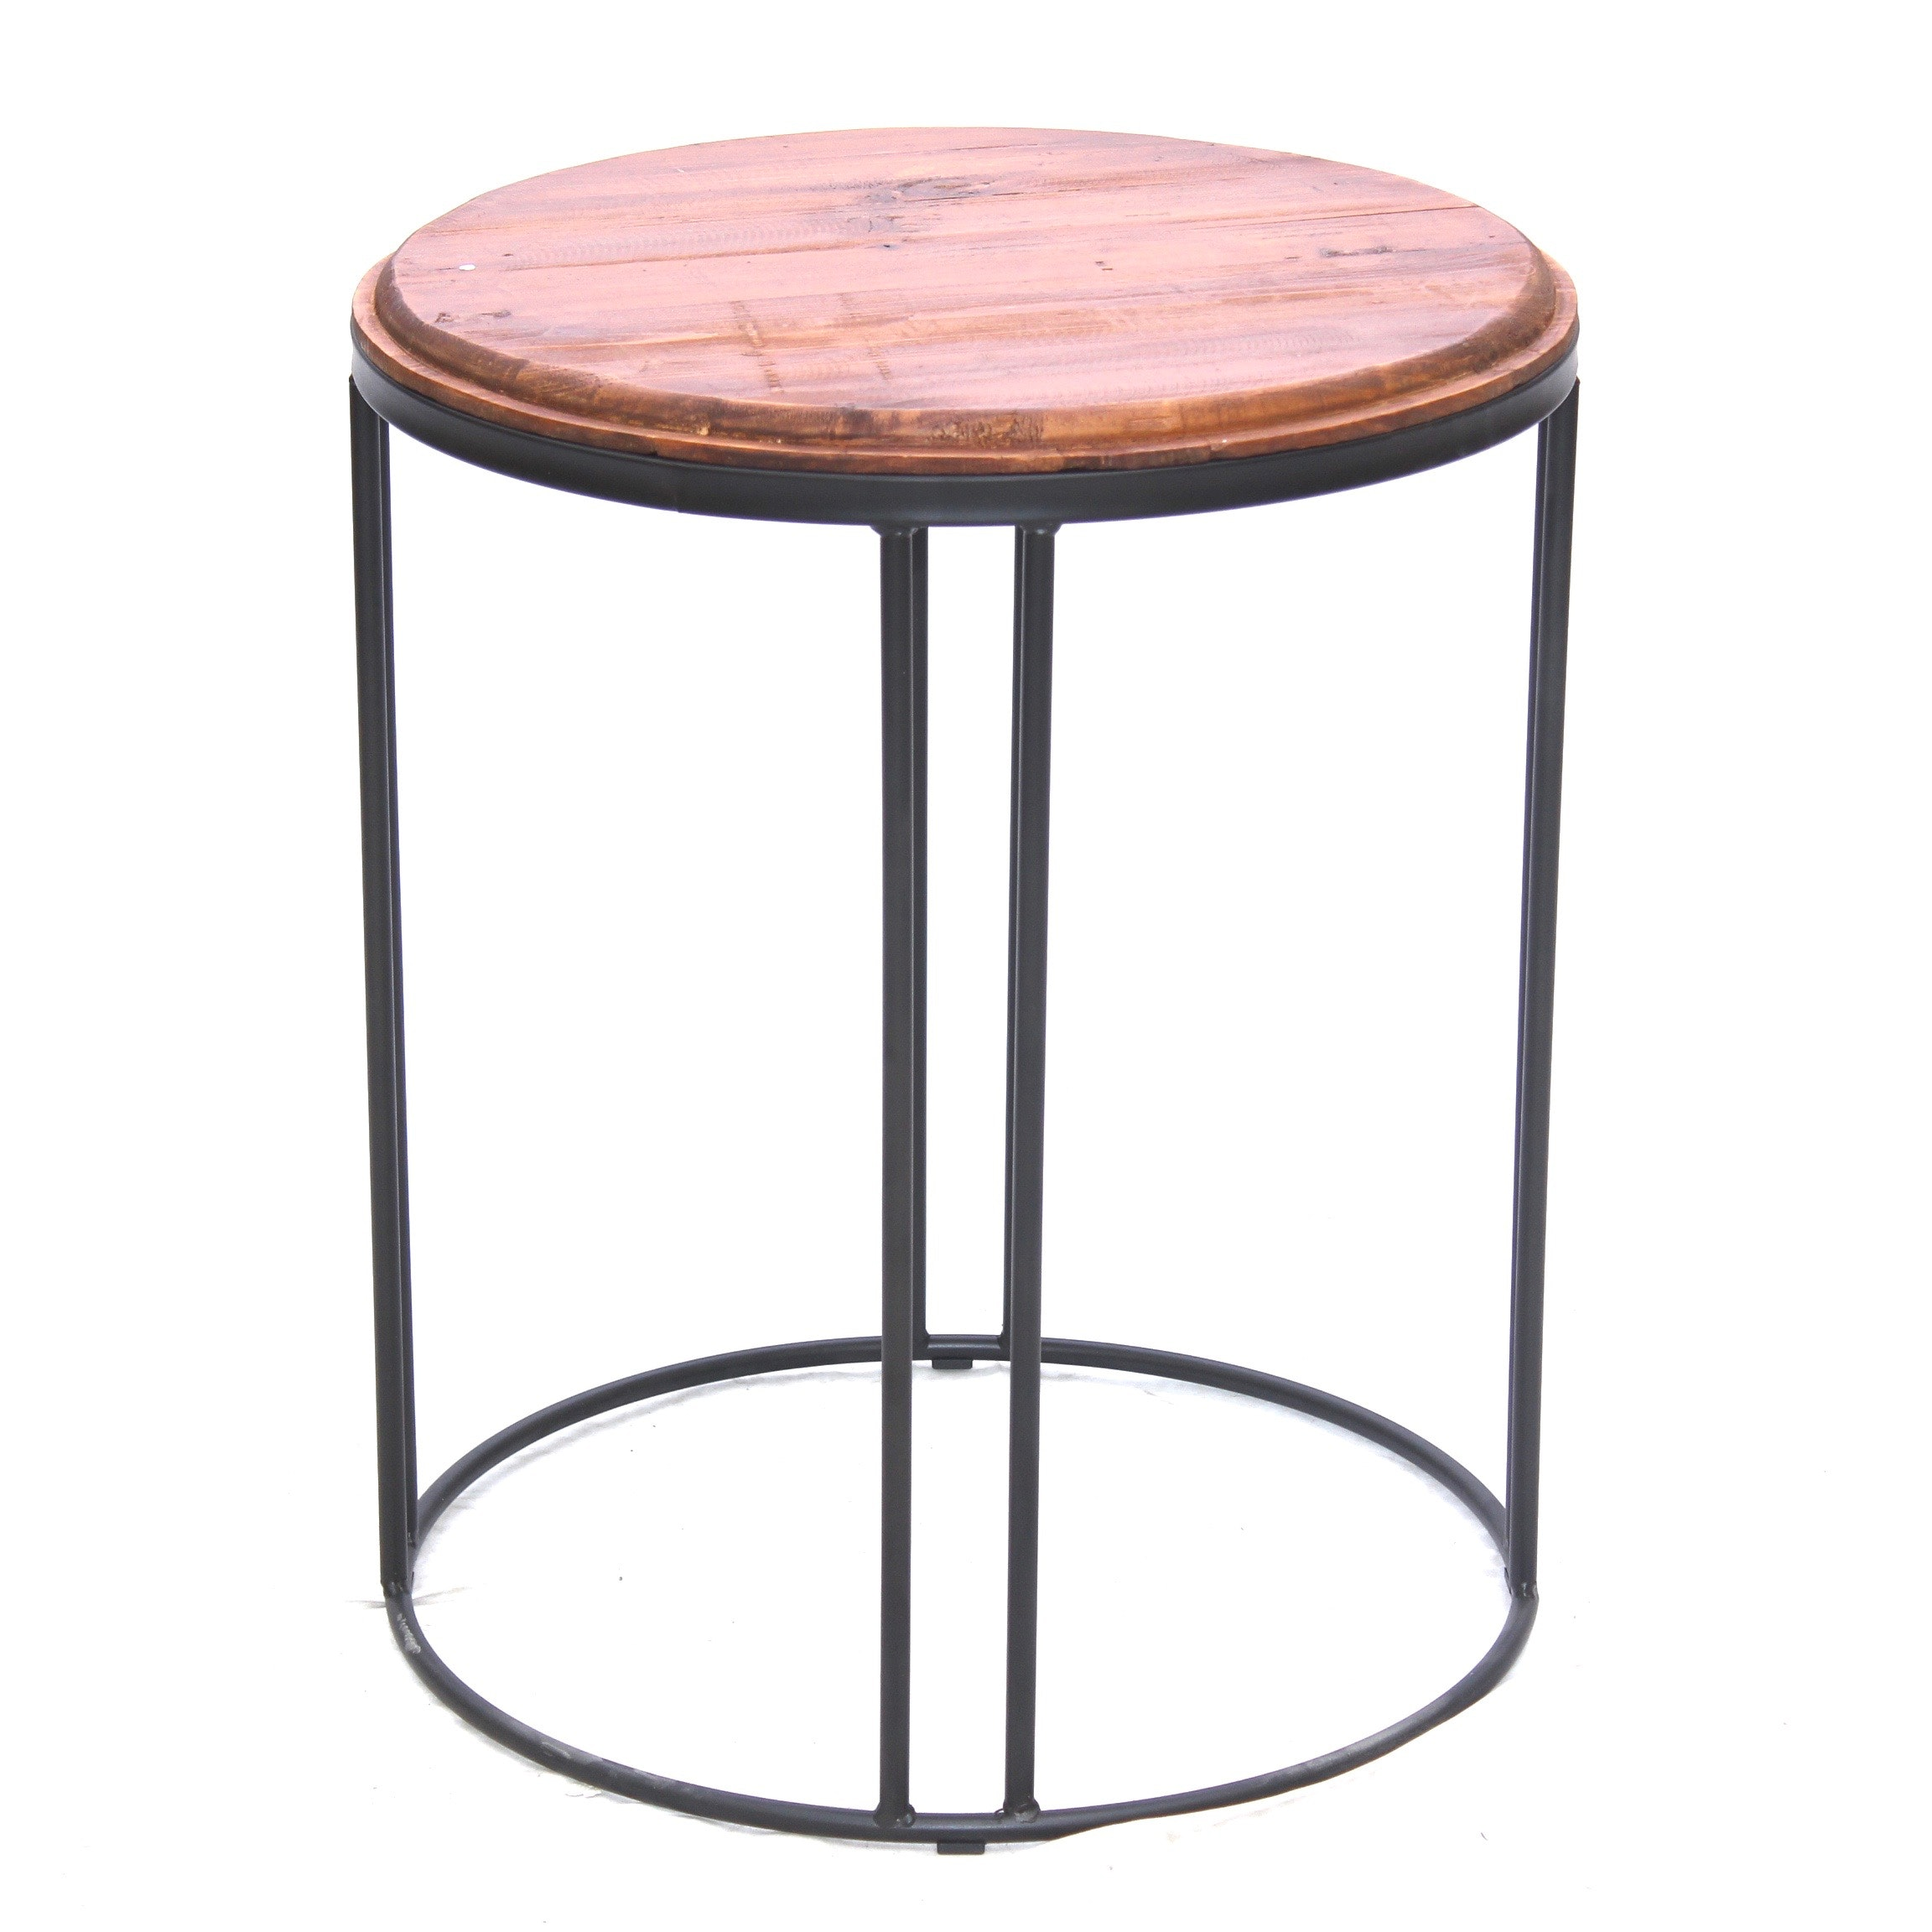 Wooden and Metal Side Table, Contemporary